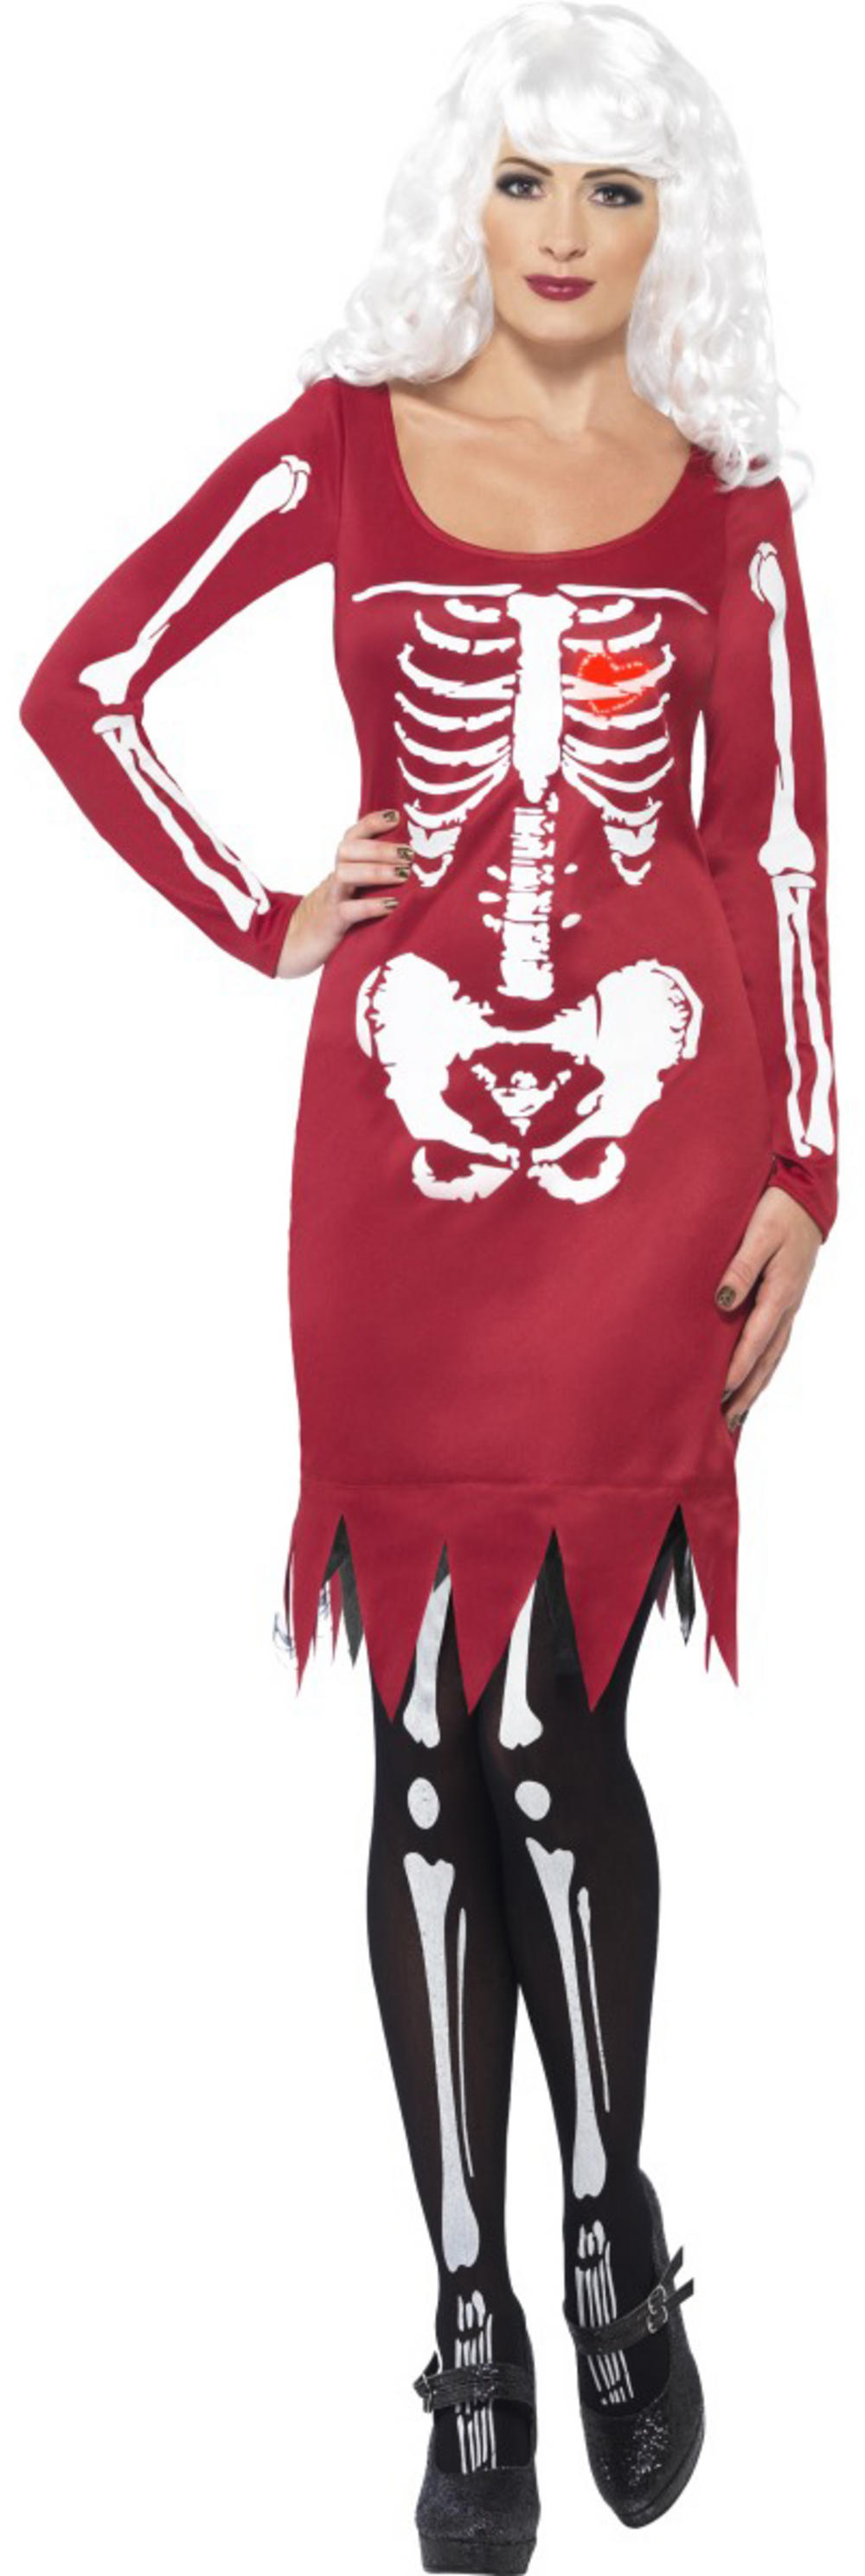 Beauty Bones Skeleton Costume